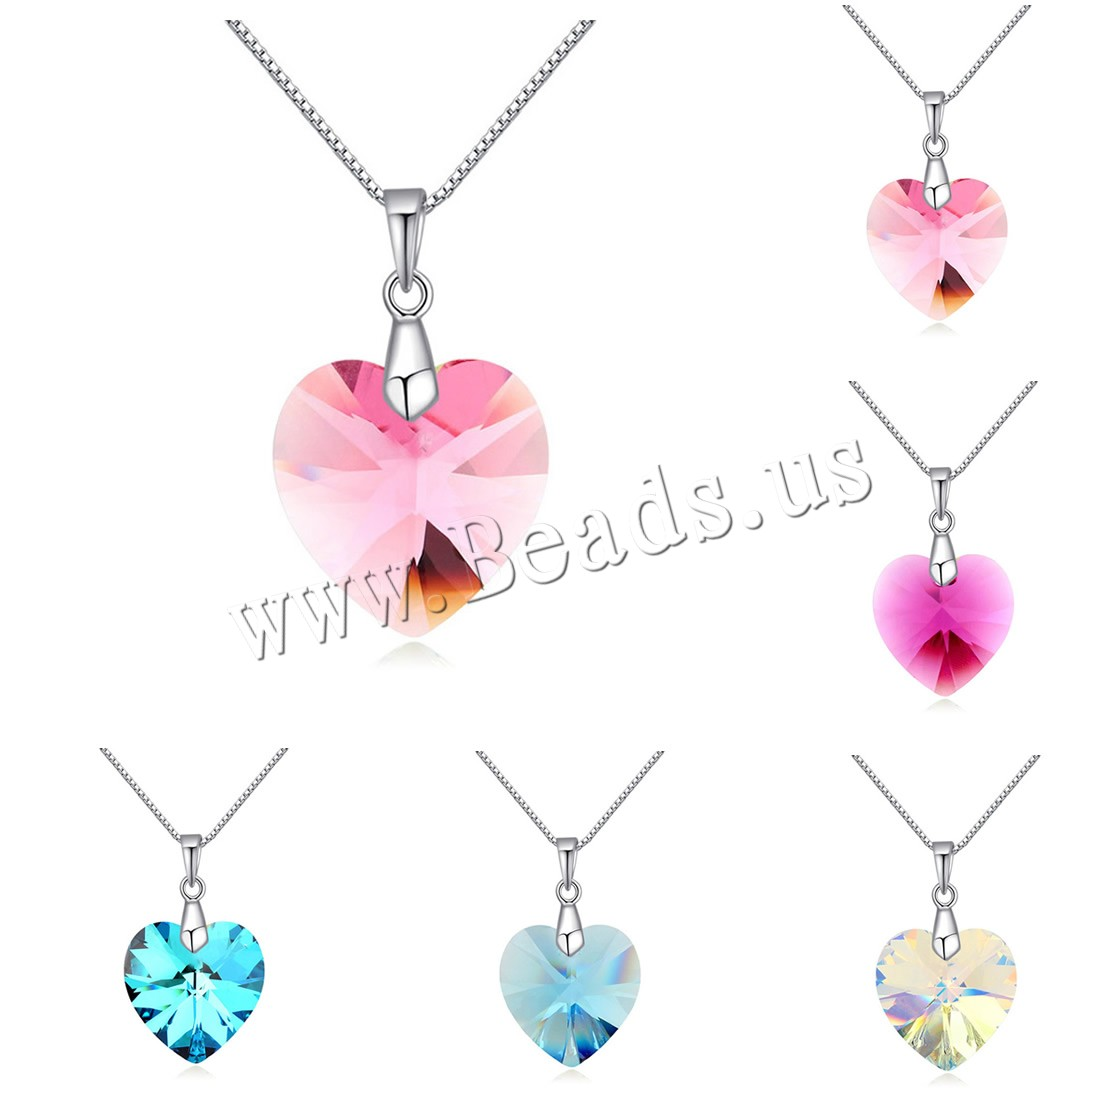 Buy CRYSTALLIZED™ Element Crystal Necklace Brass CRYSTALLIZED™ 5cm extender chain Heart platinum plated box chain & woman & faceted colors choice nickel lead & cadmium free 17x27mm Sold Per Approx 15.5 Inch Strand